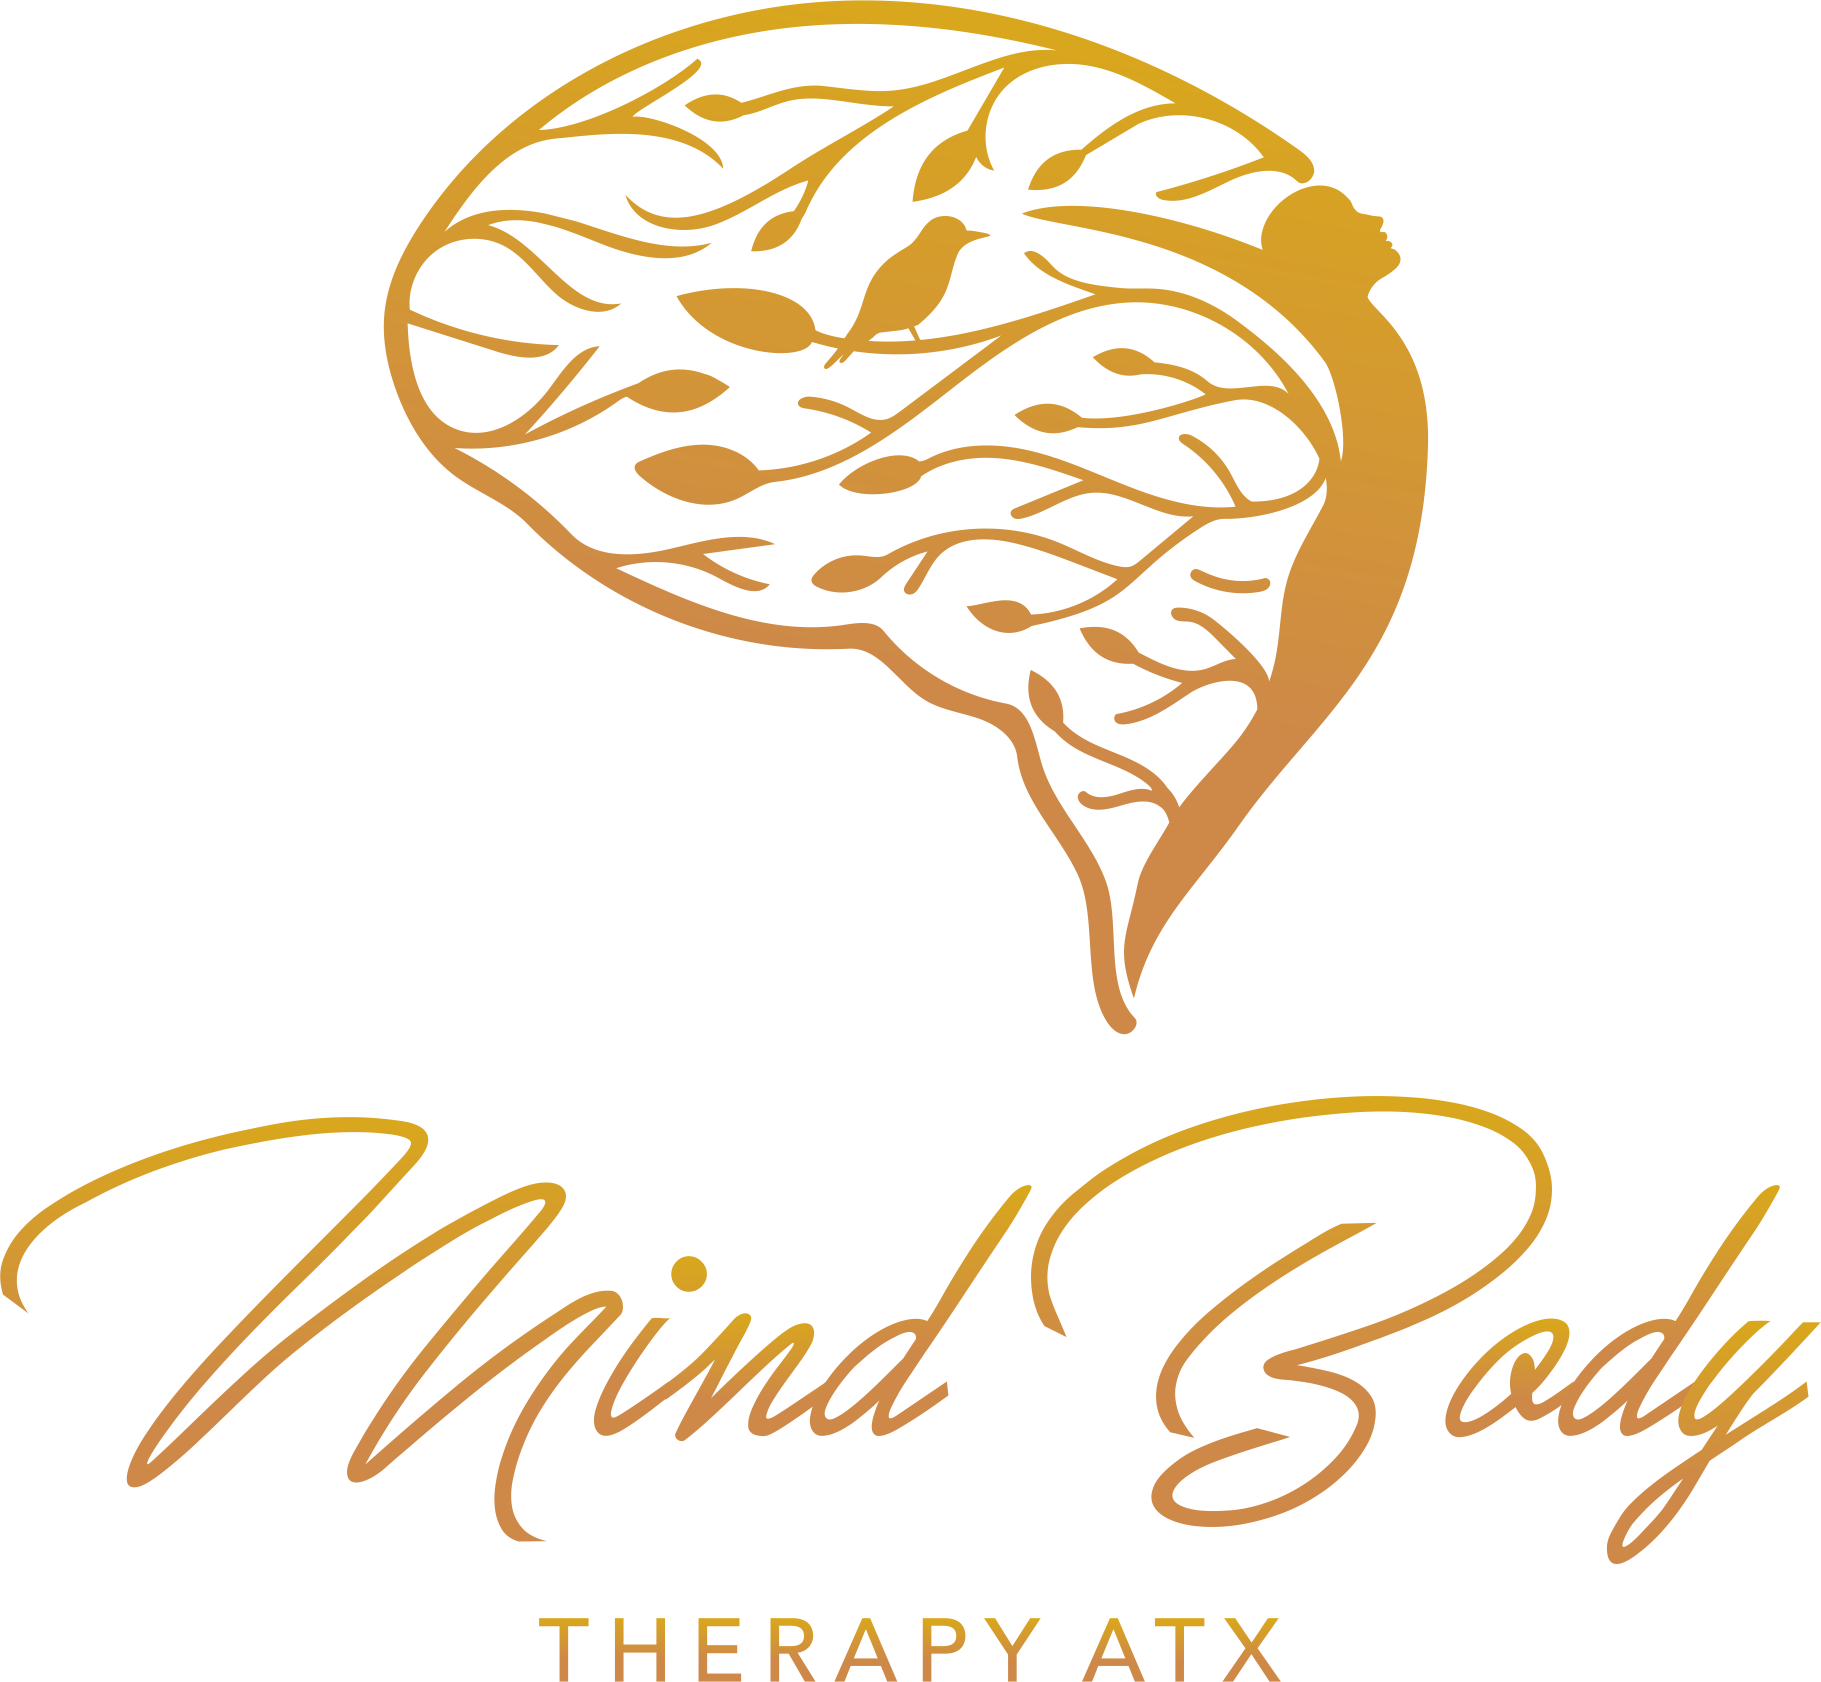 Need an impactful modern logo illustrating the mind-body connection